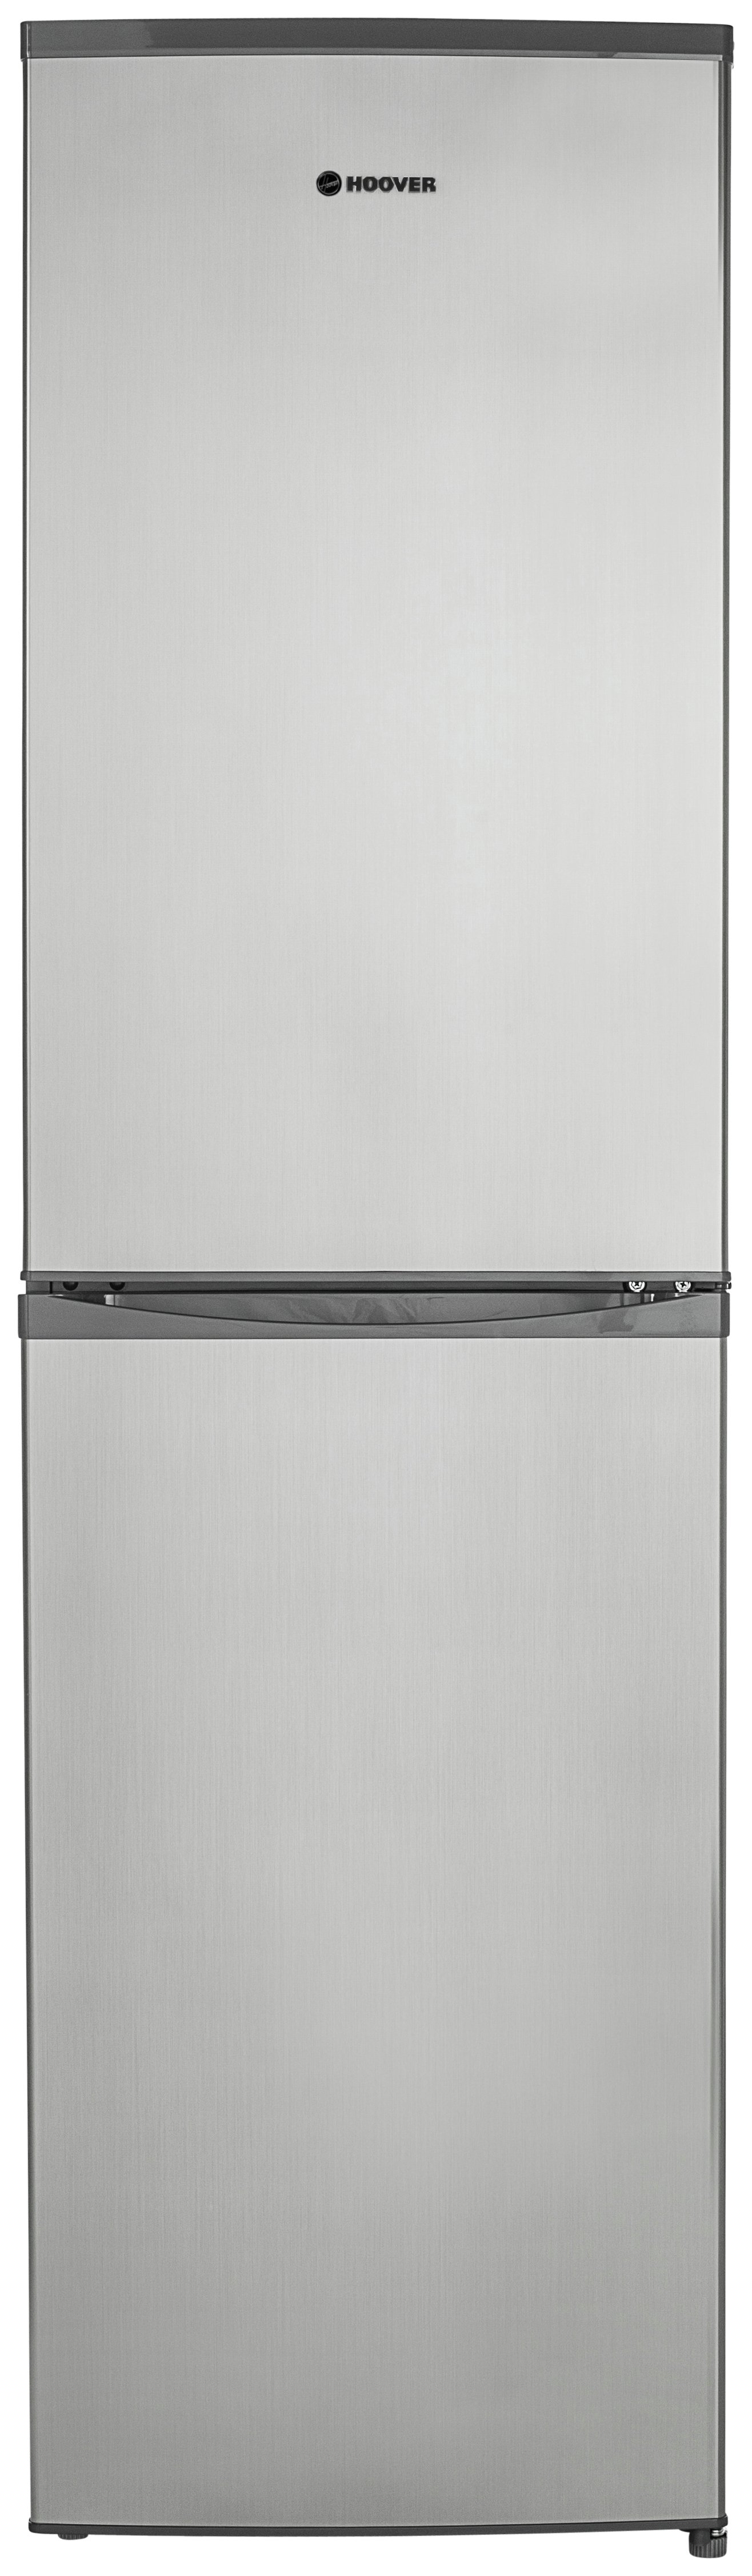 Hoover HFF195XK Fridge Freezer - Stainless Steel